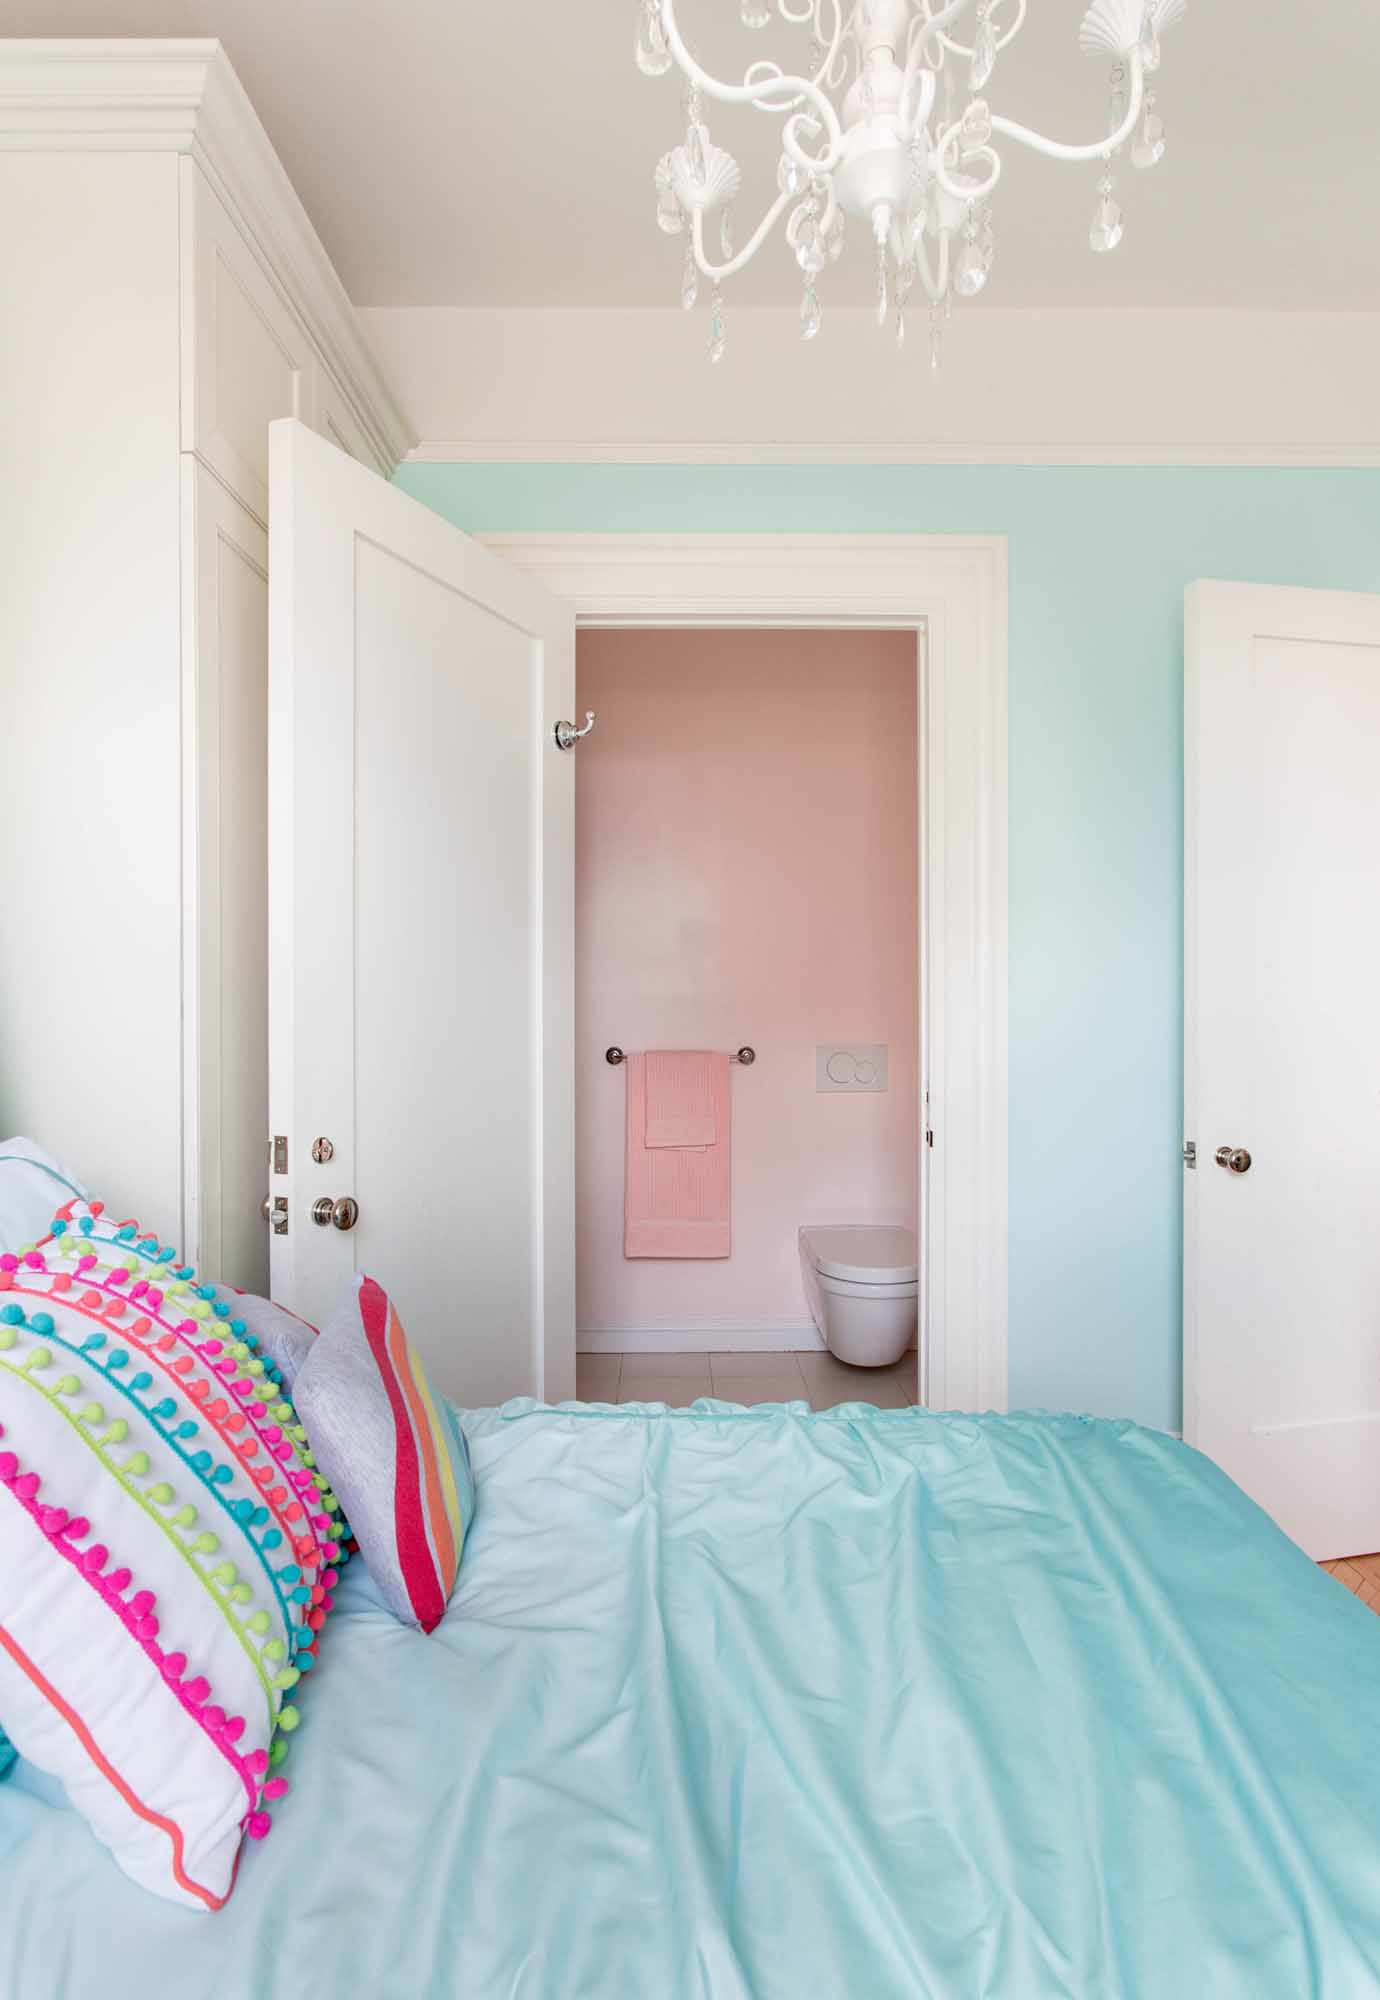 Little Girls Room Design Ideas Caroline Kopp Darien CT Interior Designers.jpg